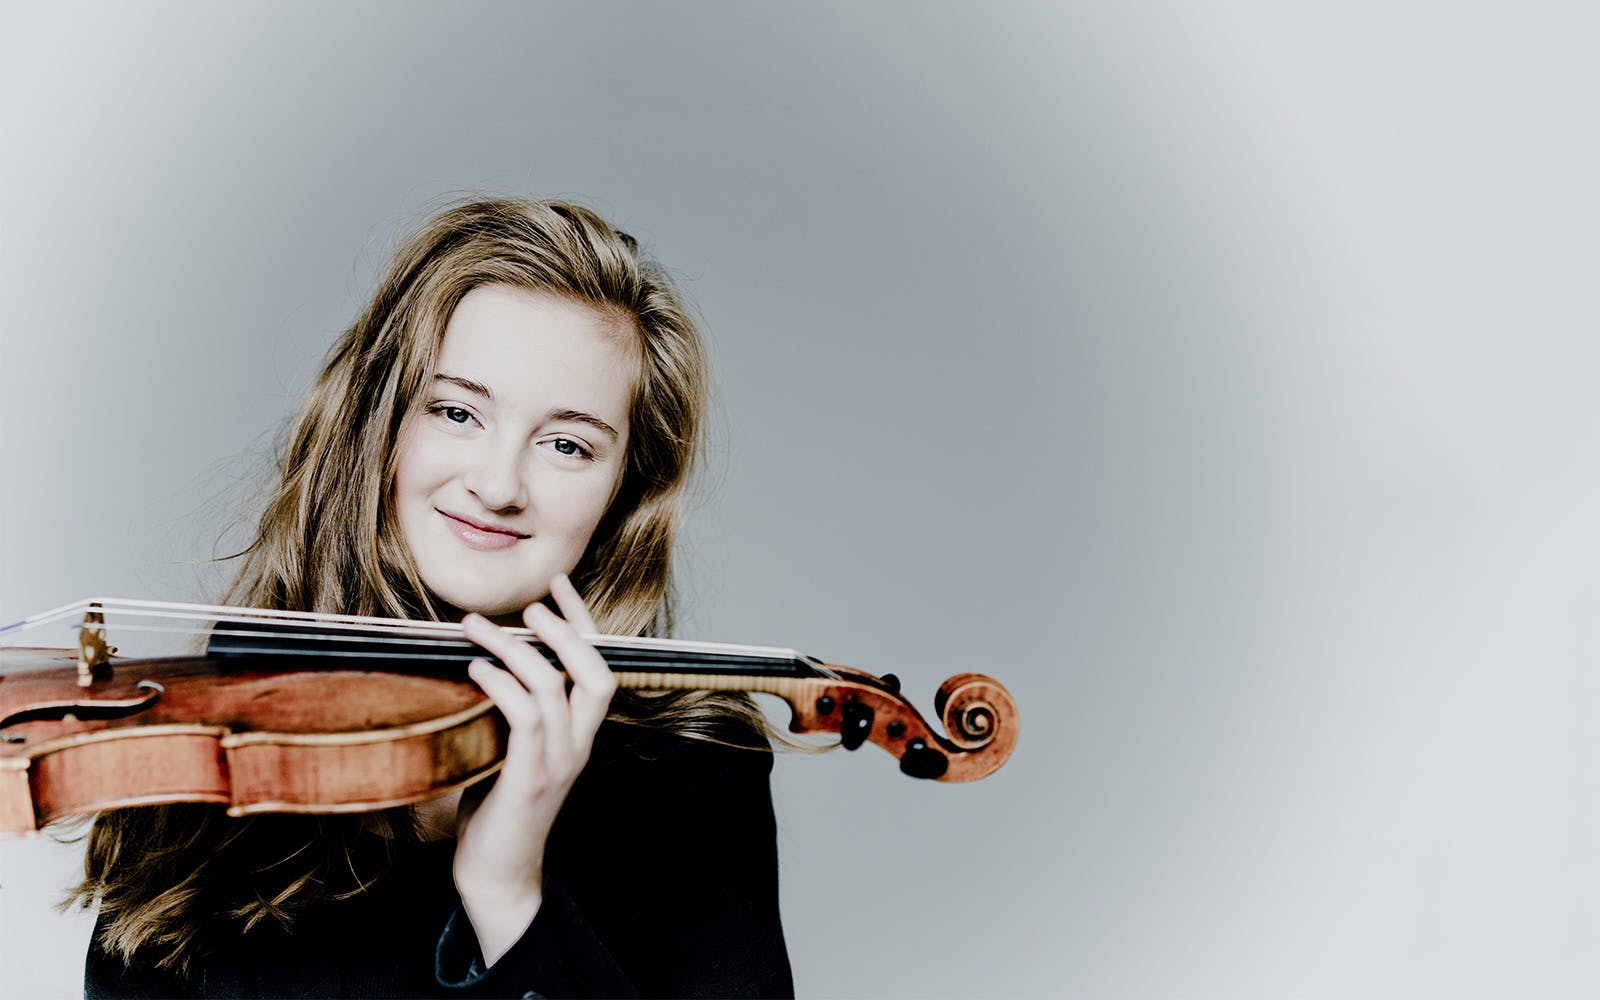 noa wildschut in mozart's violin concerto no. 5-1